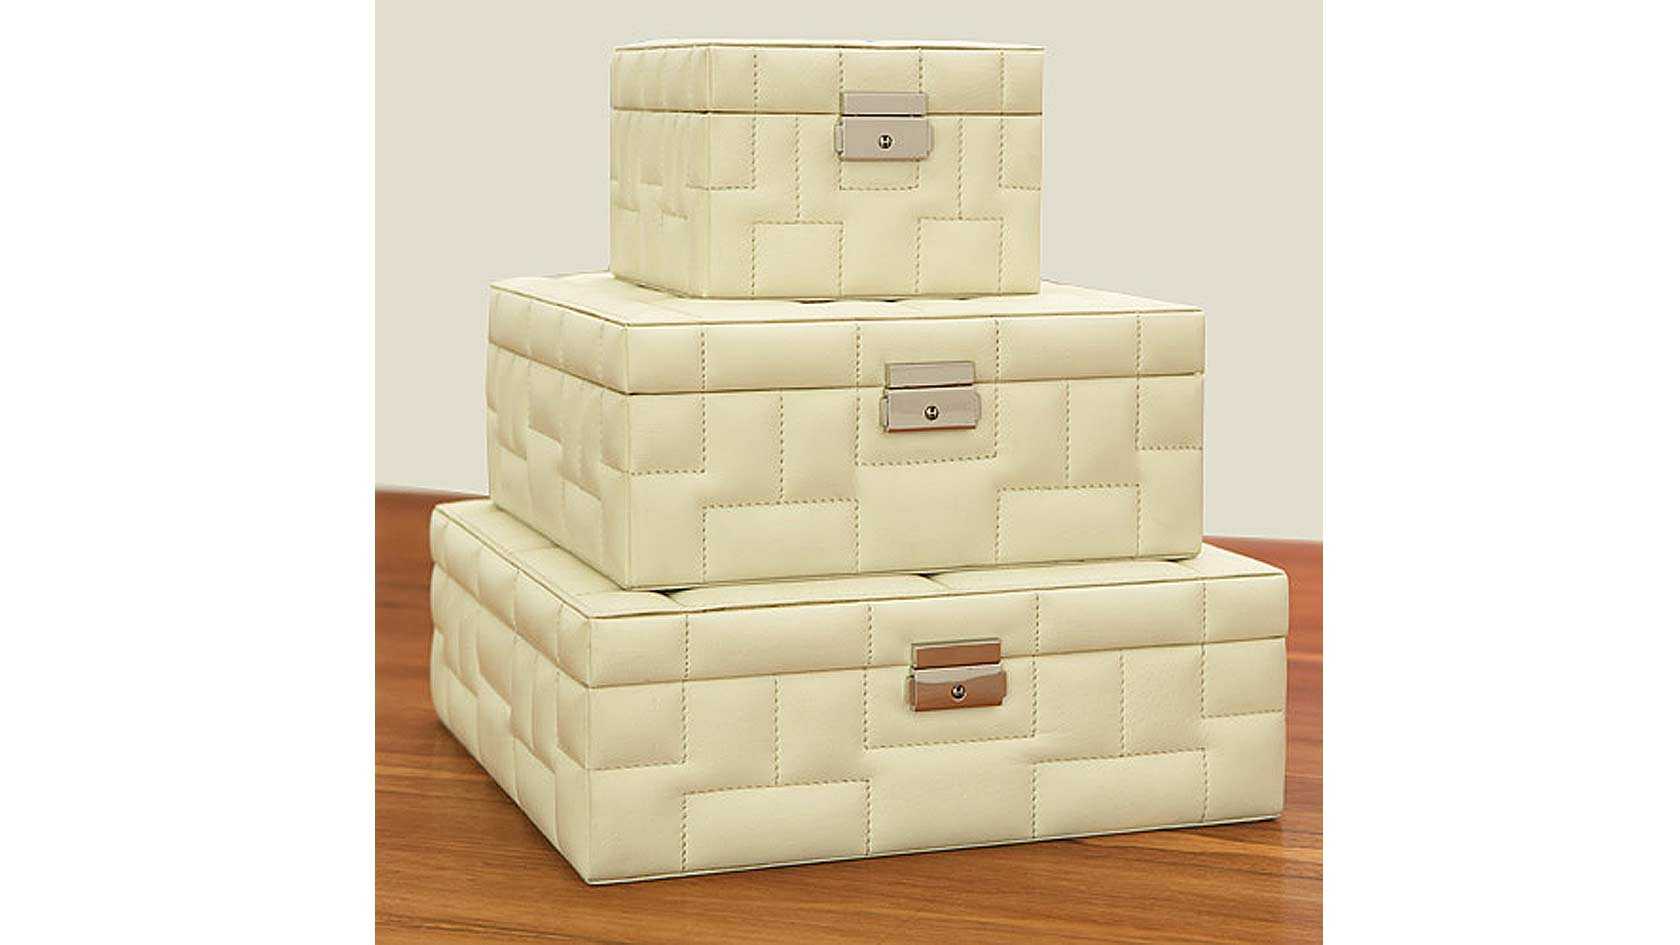 Barcelona Quilted Leather Boxes